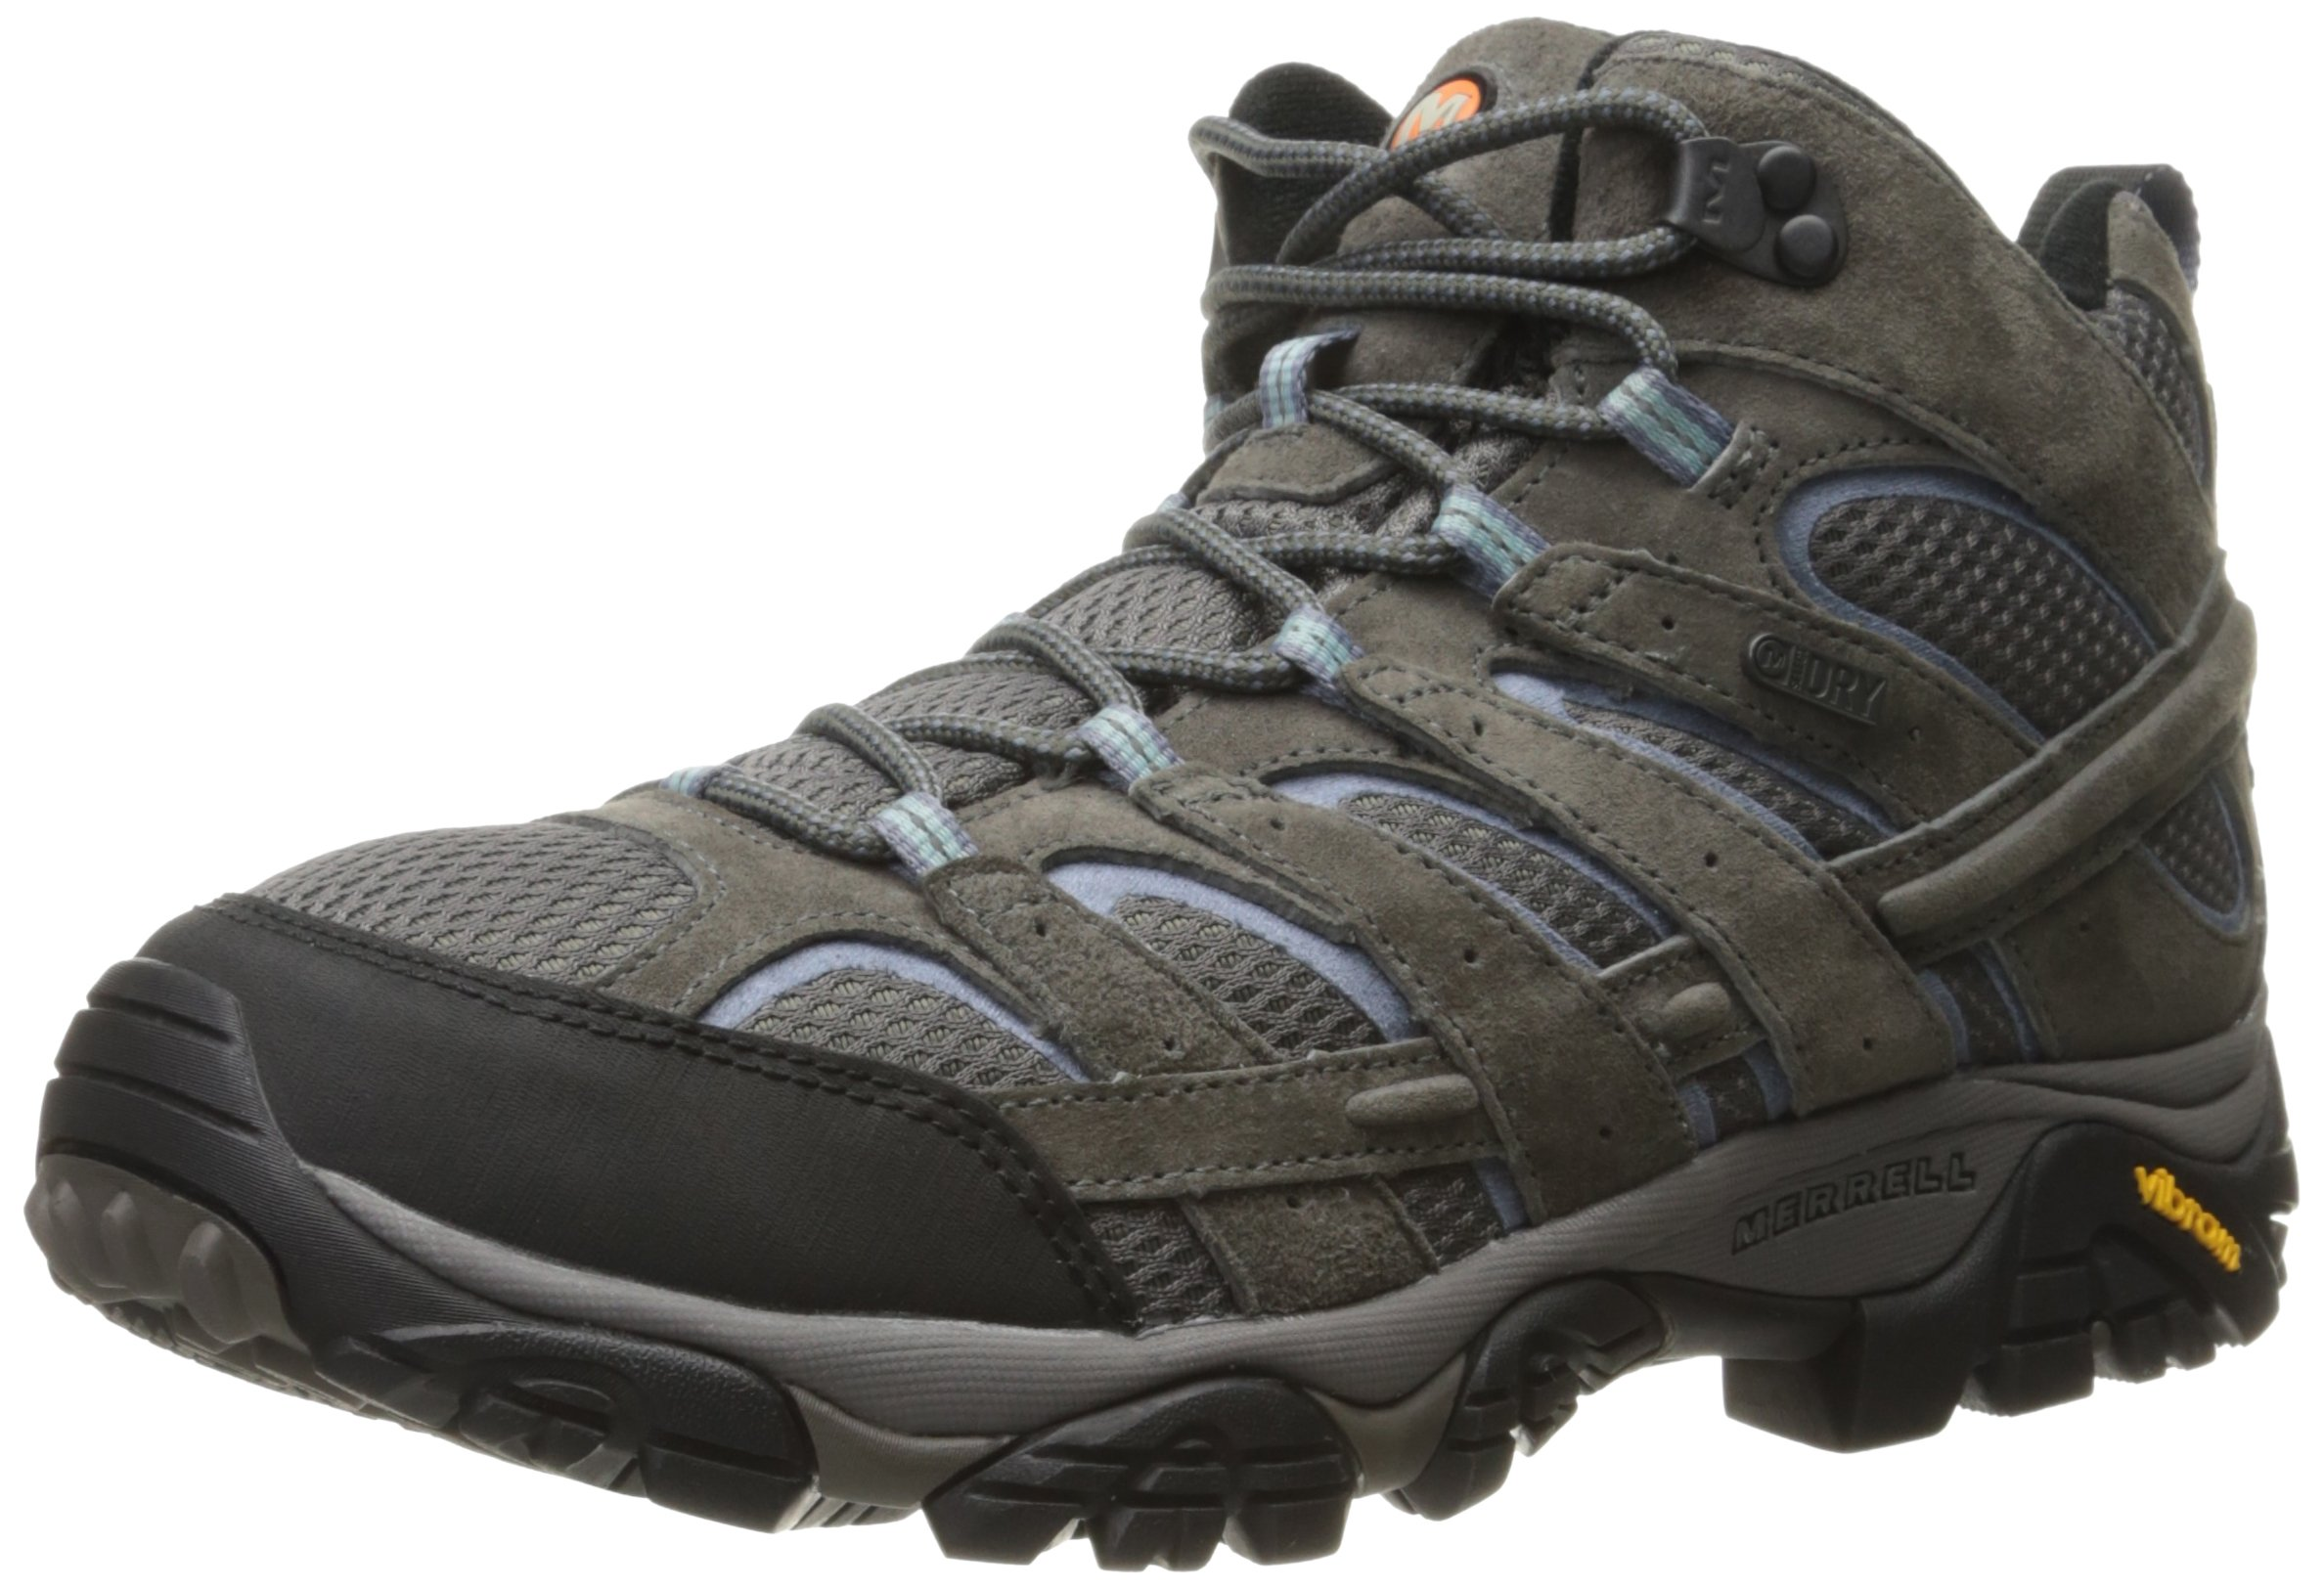 Merrell Women's Moab 2 Mid Waterproof Hiking Boot, Granite, 7 M US by Merrell